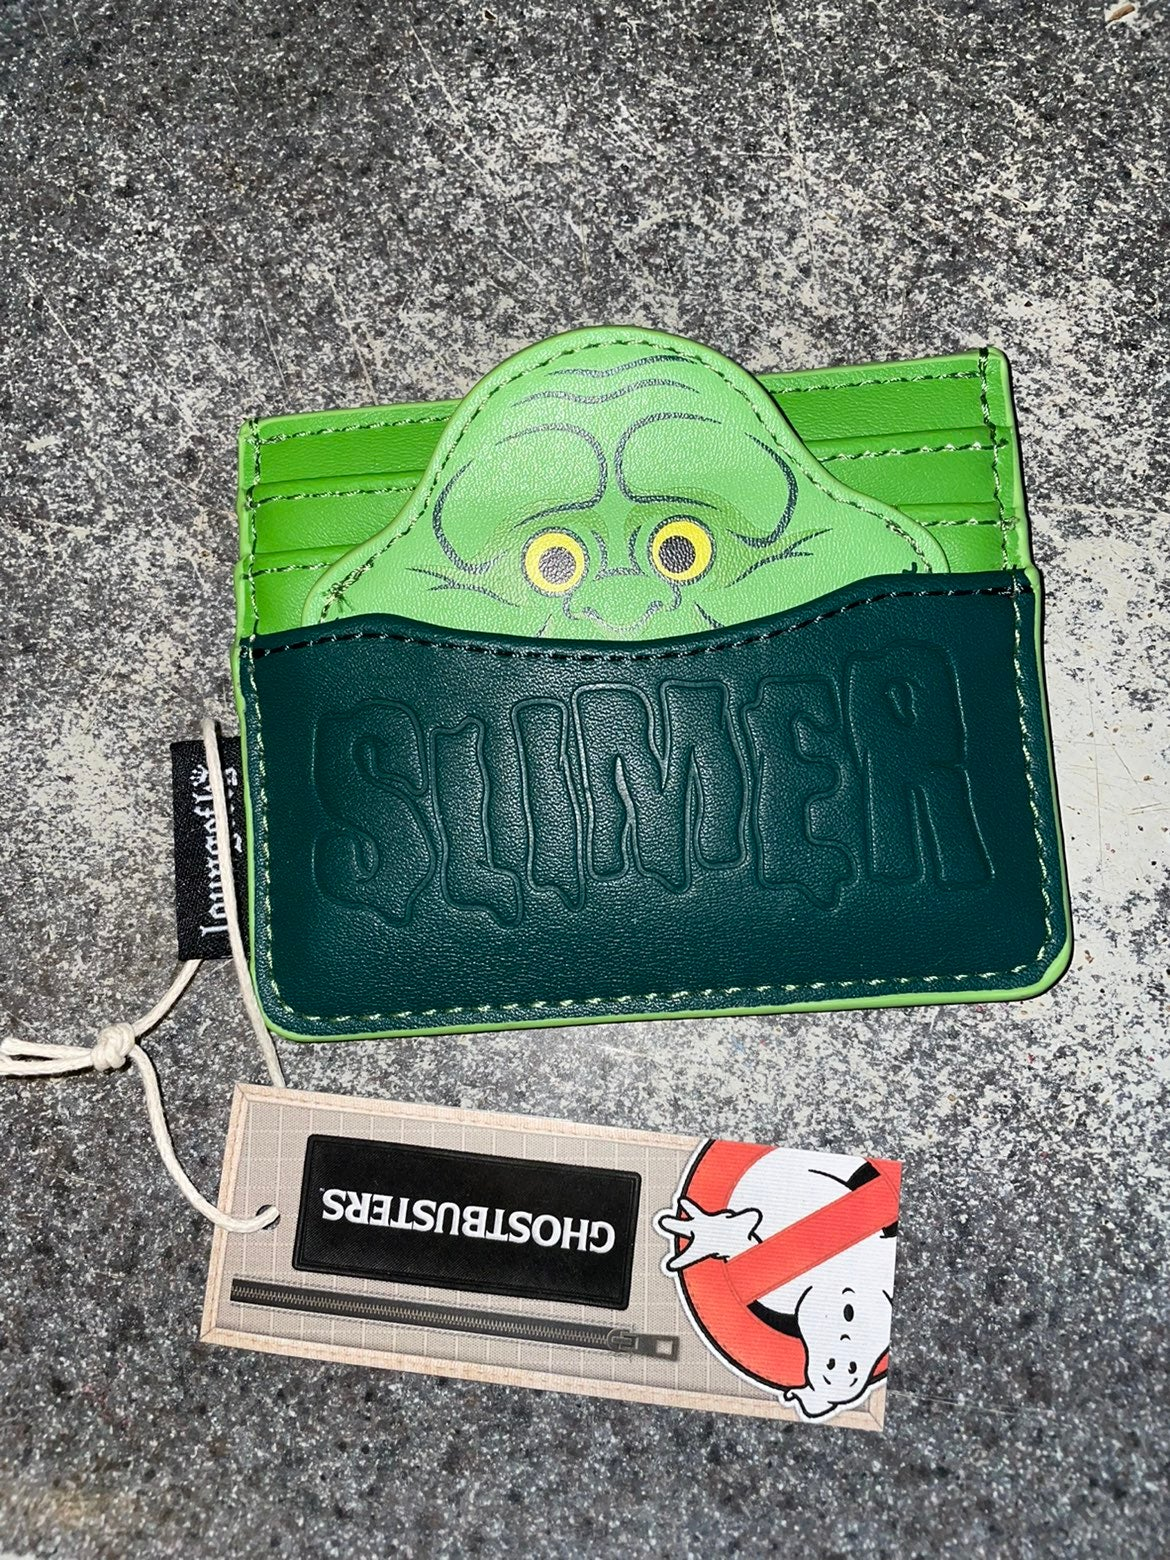 Ghostbusters Loungefly Card Holder